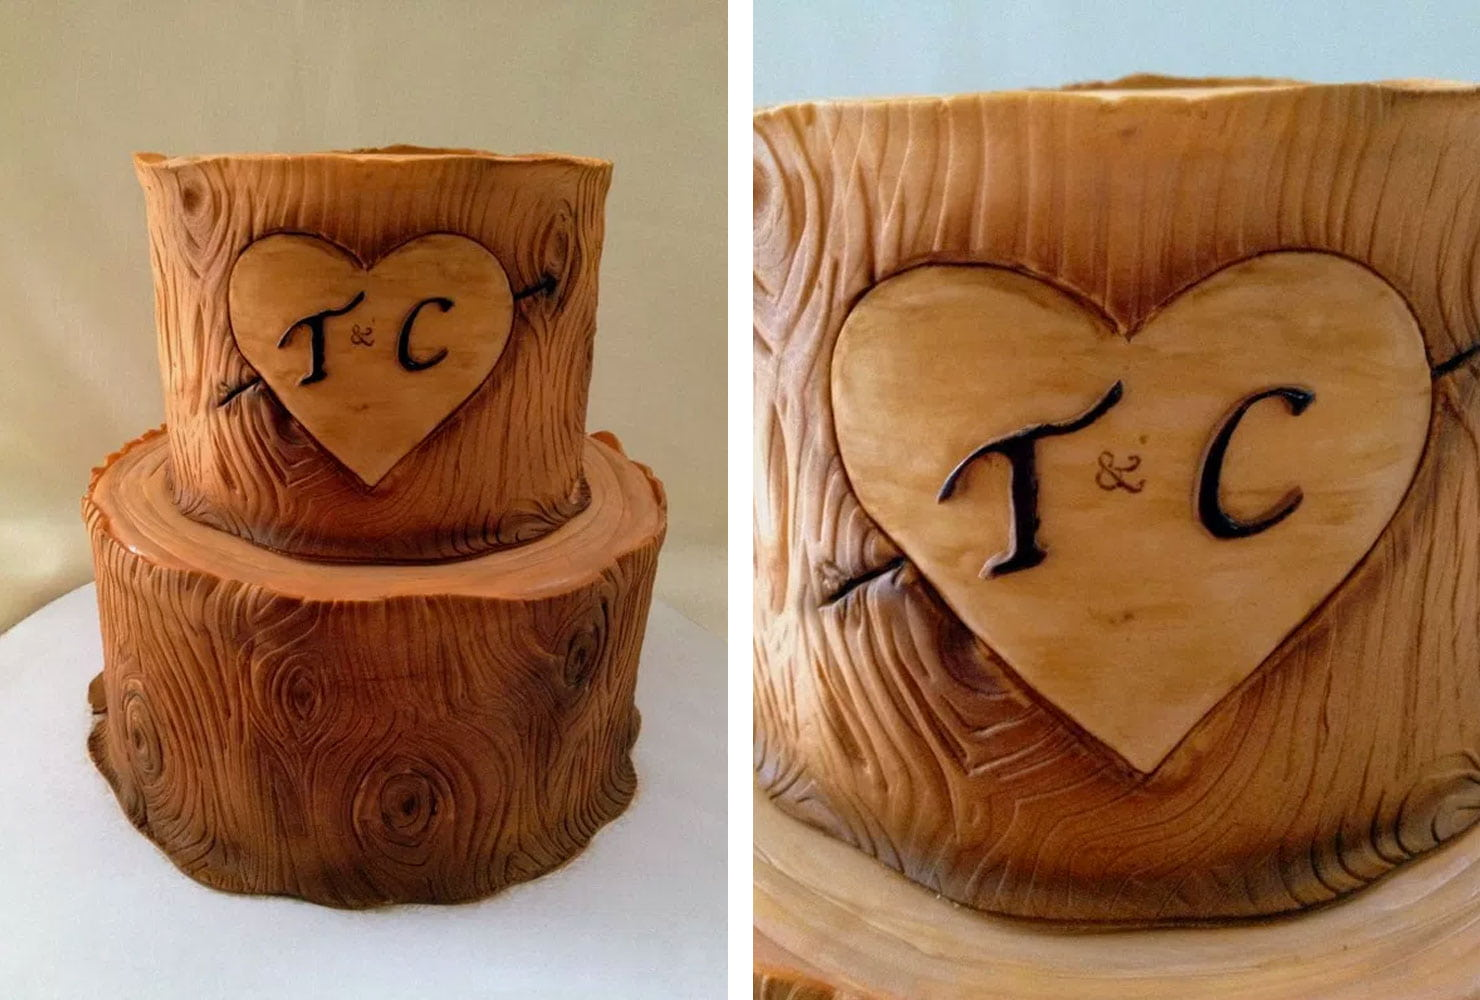 Monogram tiered cake decorated like a tree trunk